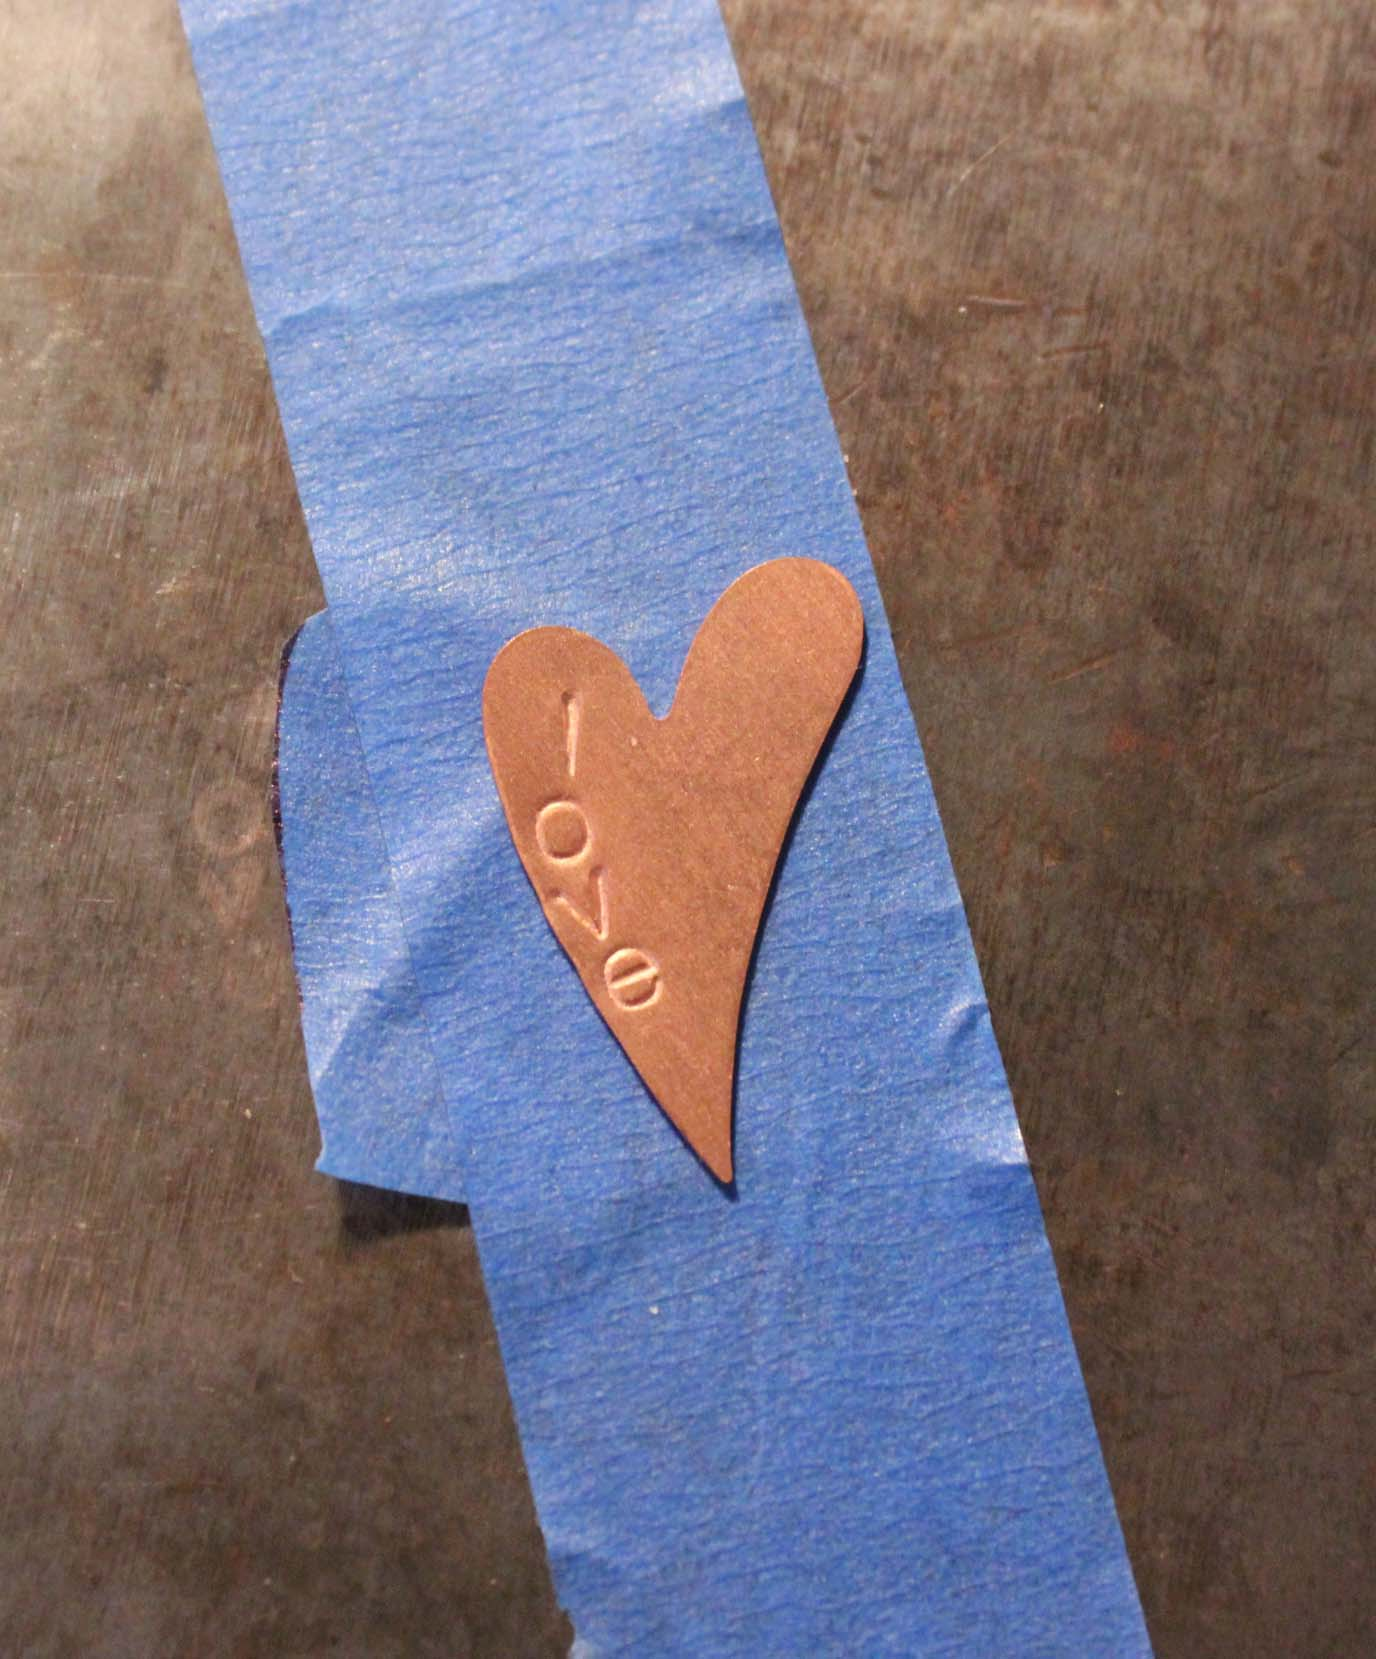 Heart shaped blank has been stamped with the letters l-o-v-e